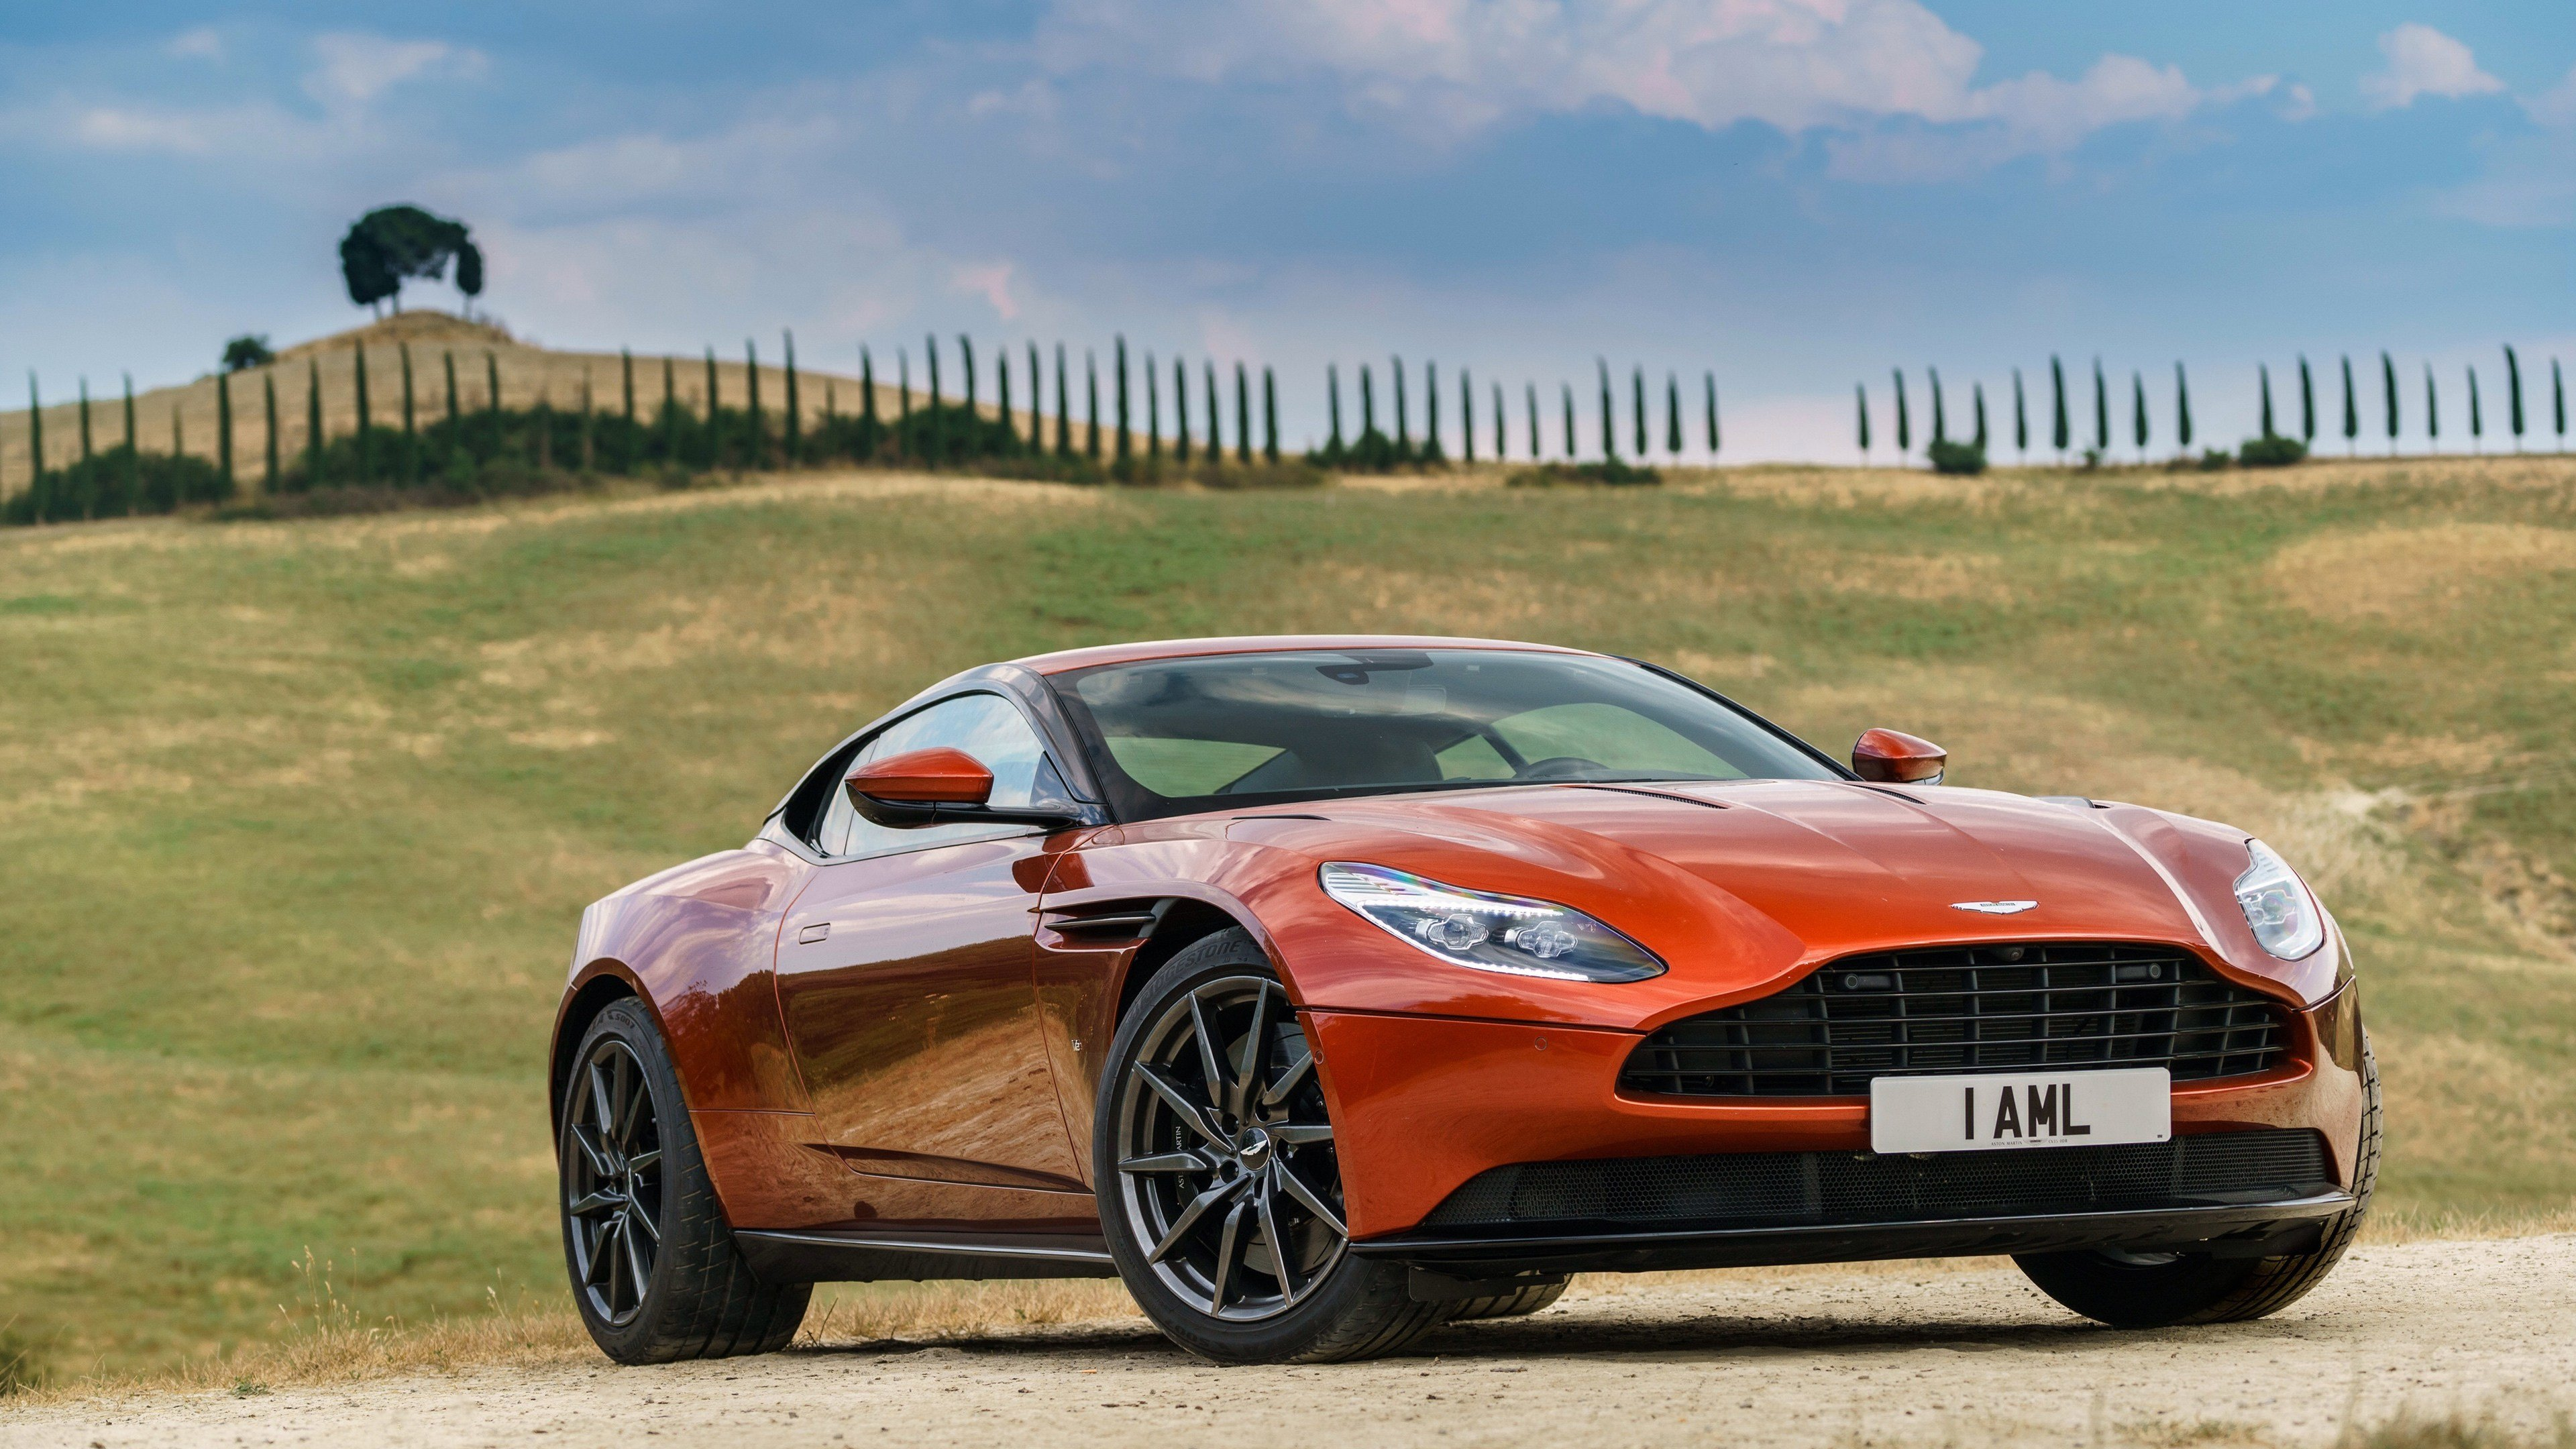 Latest Aston Martin Db11 4K Wallpaper Hd Car Wallpapers Id 6959 Free Download